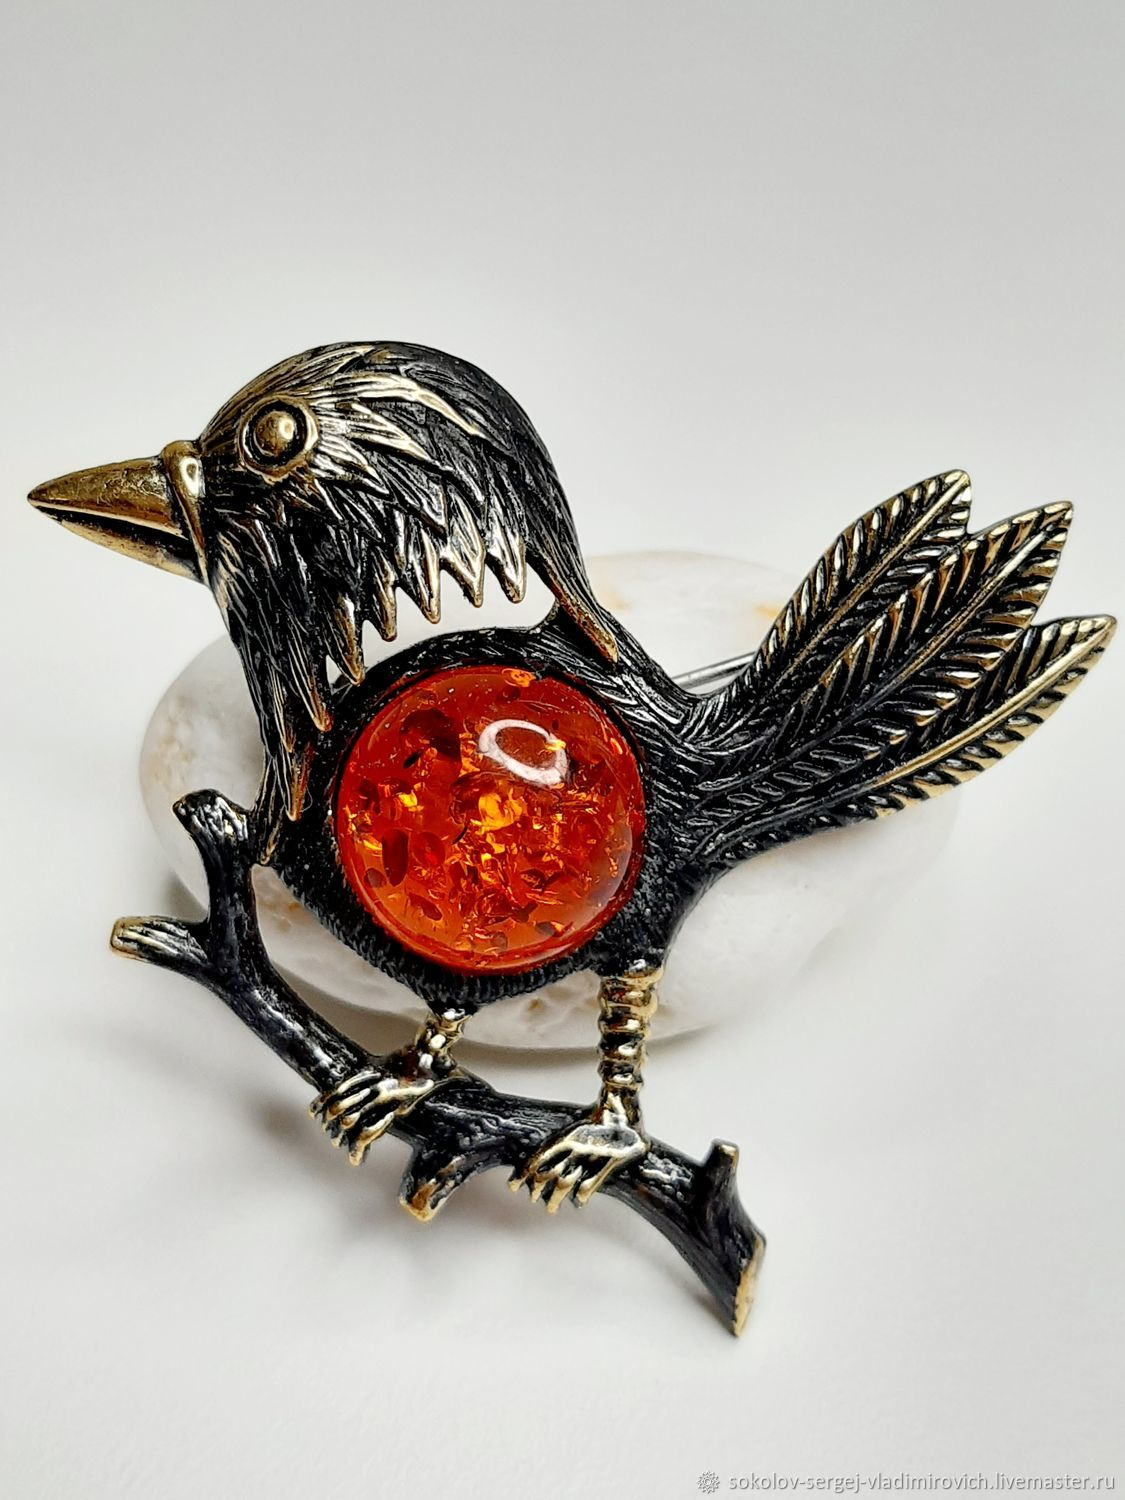 Karkusha Raven Brooch, Brooches, Moscow,  Фото №1